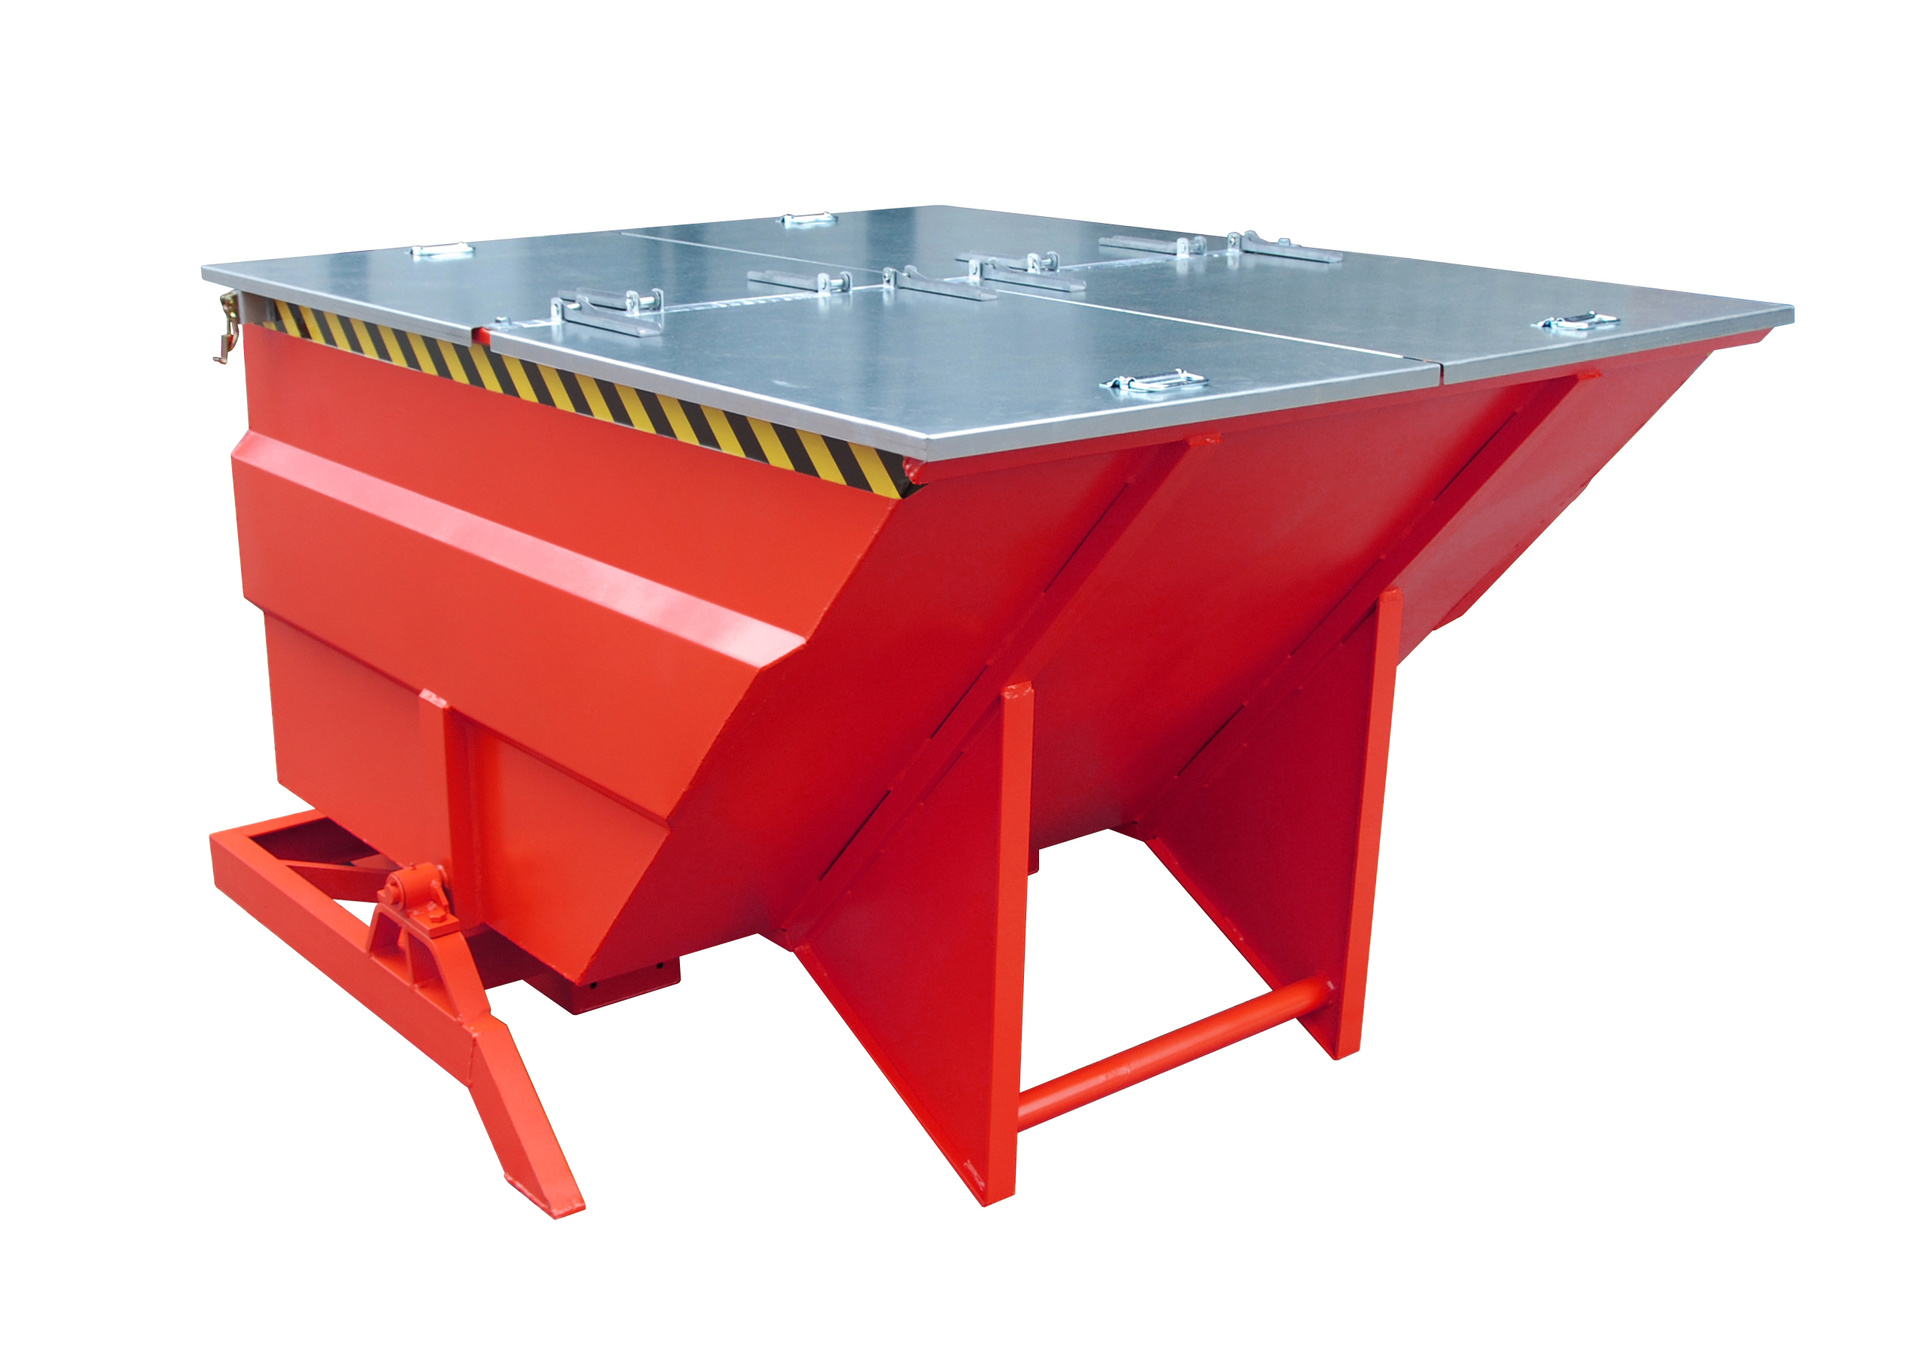 Bauer Südlohn® BKC tilting container, with side pivot bearing